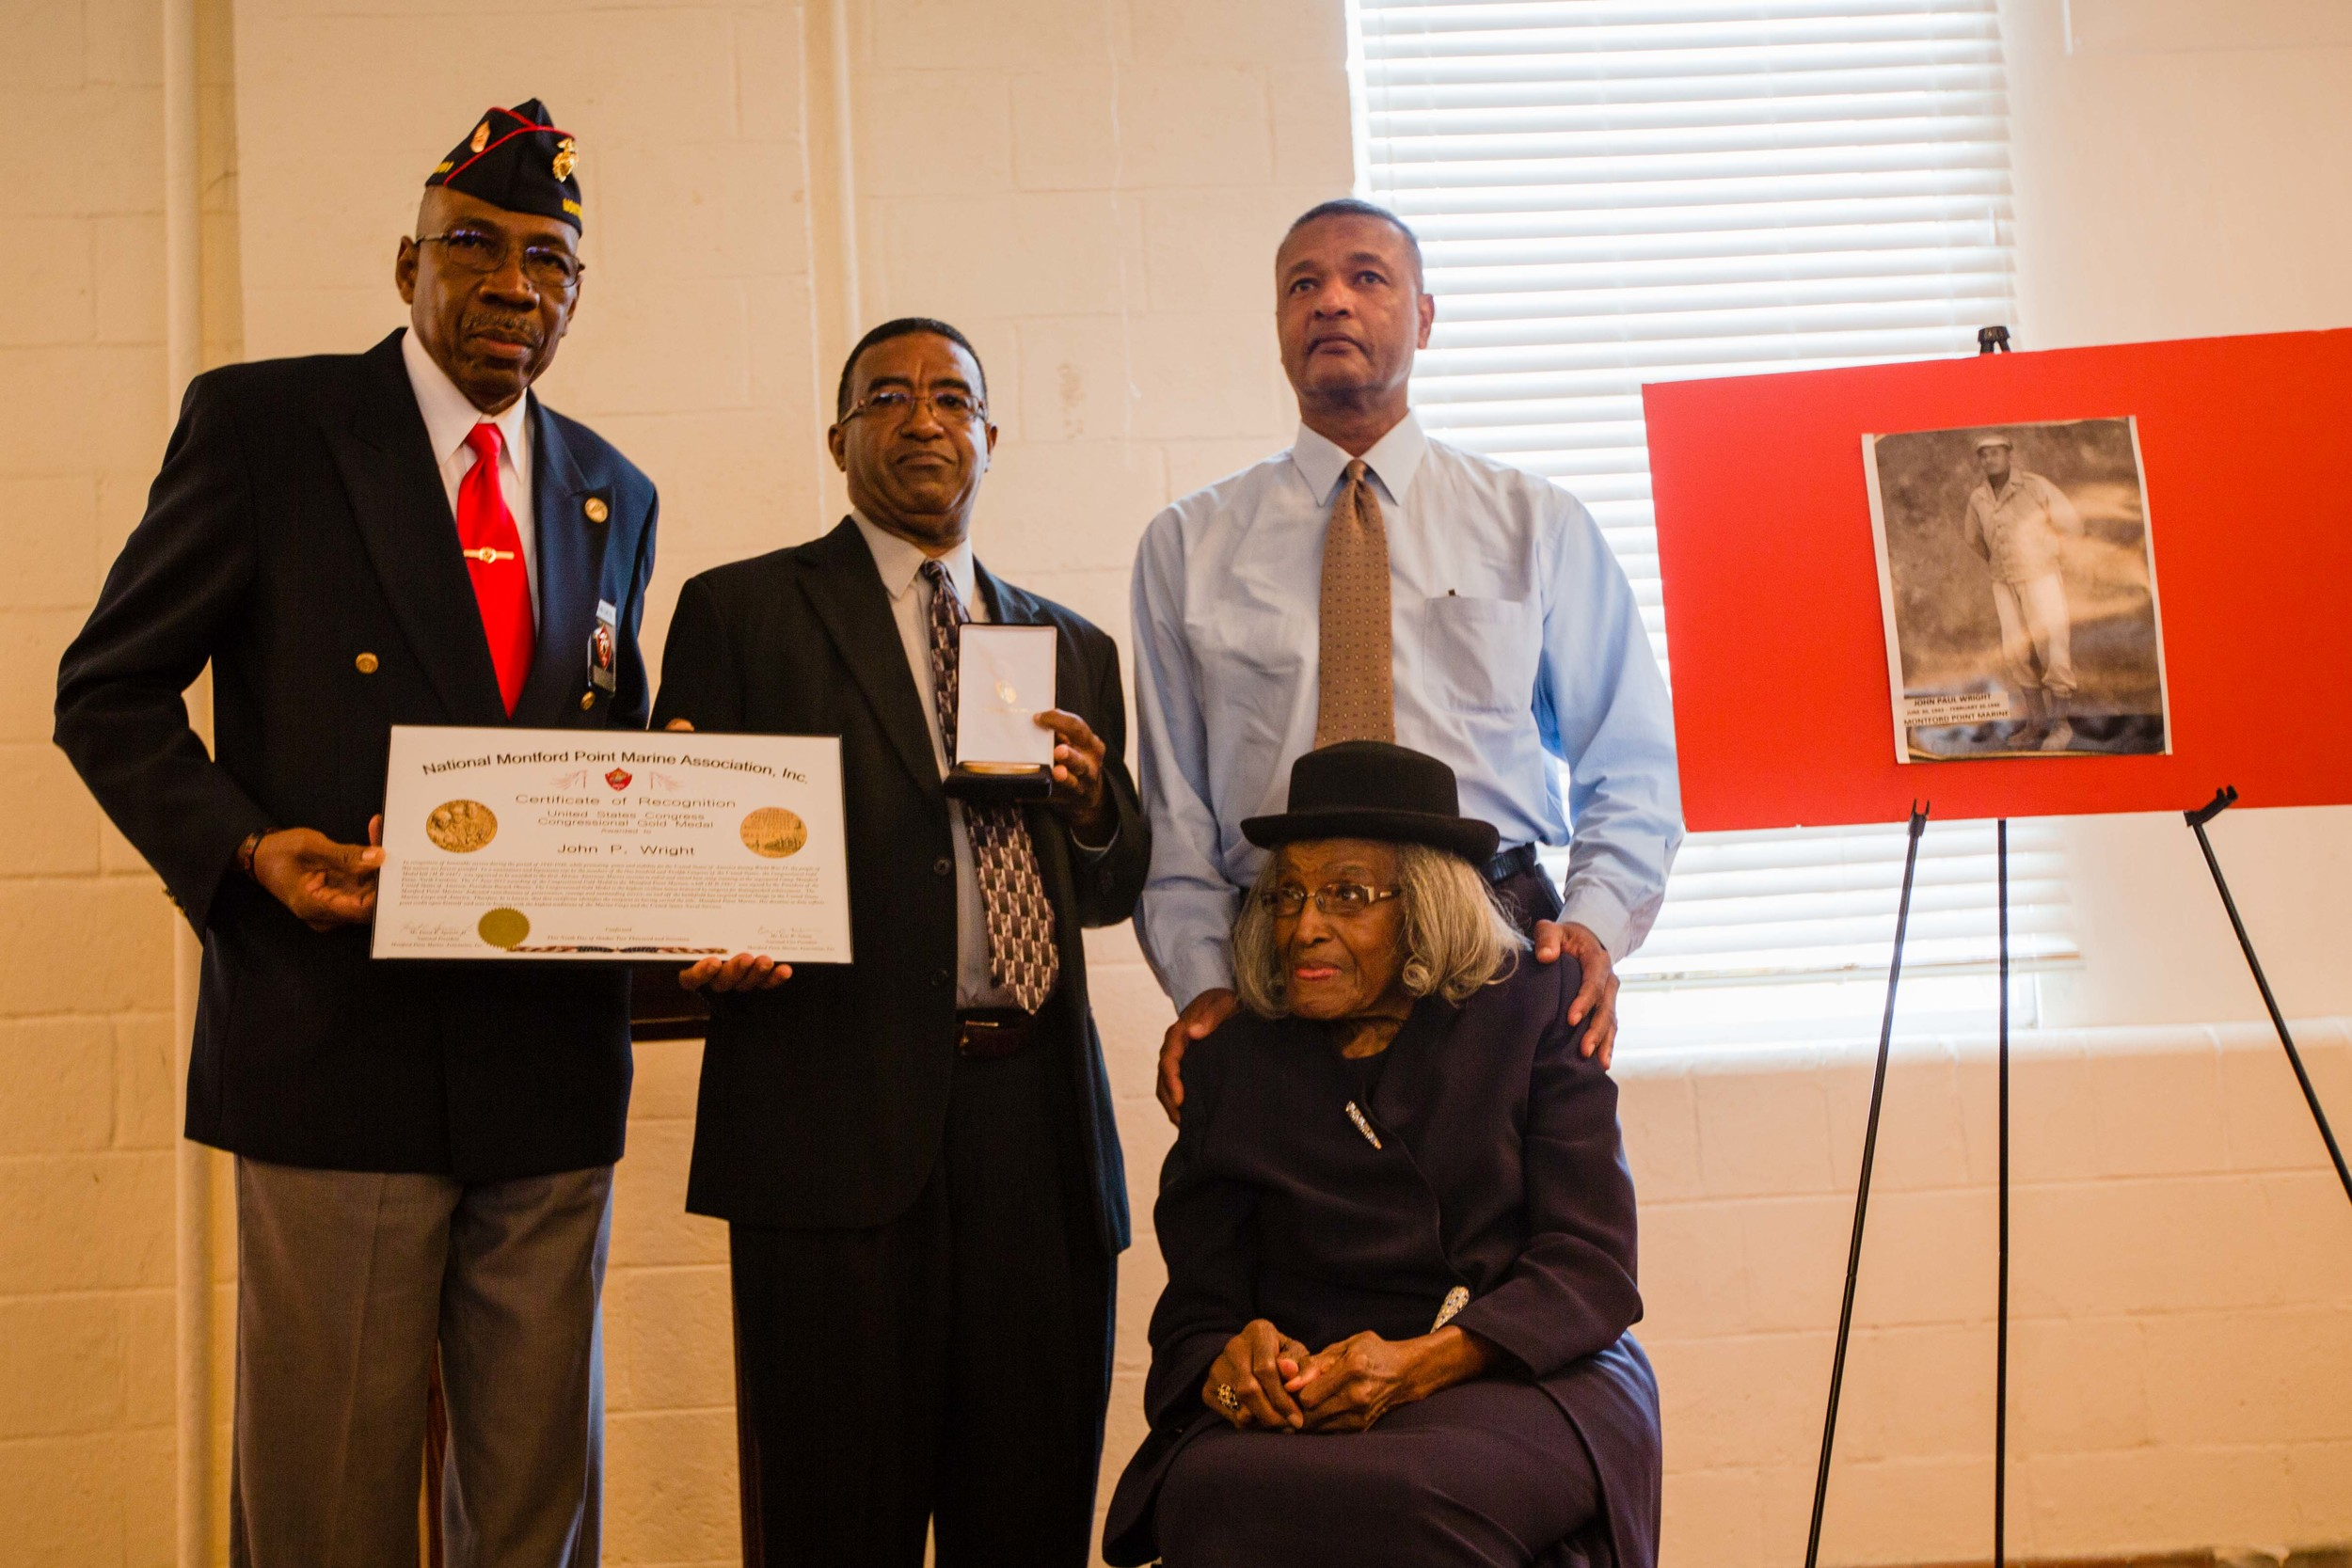 Michael Wright displays the Congressional Gold Medal he accepted on behalf of his late father, John Paul Wright, accompanied, to his right, by Hampton Woodward Jr. and Margaret W. Davis, his father's nephew and sister.